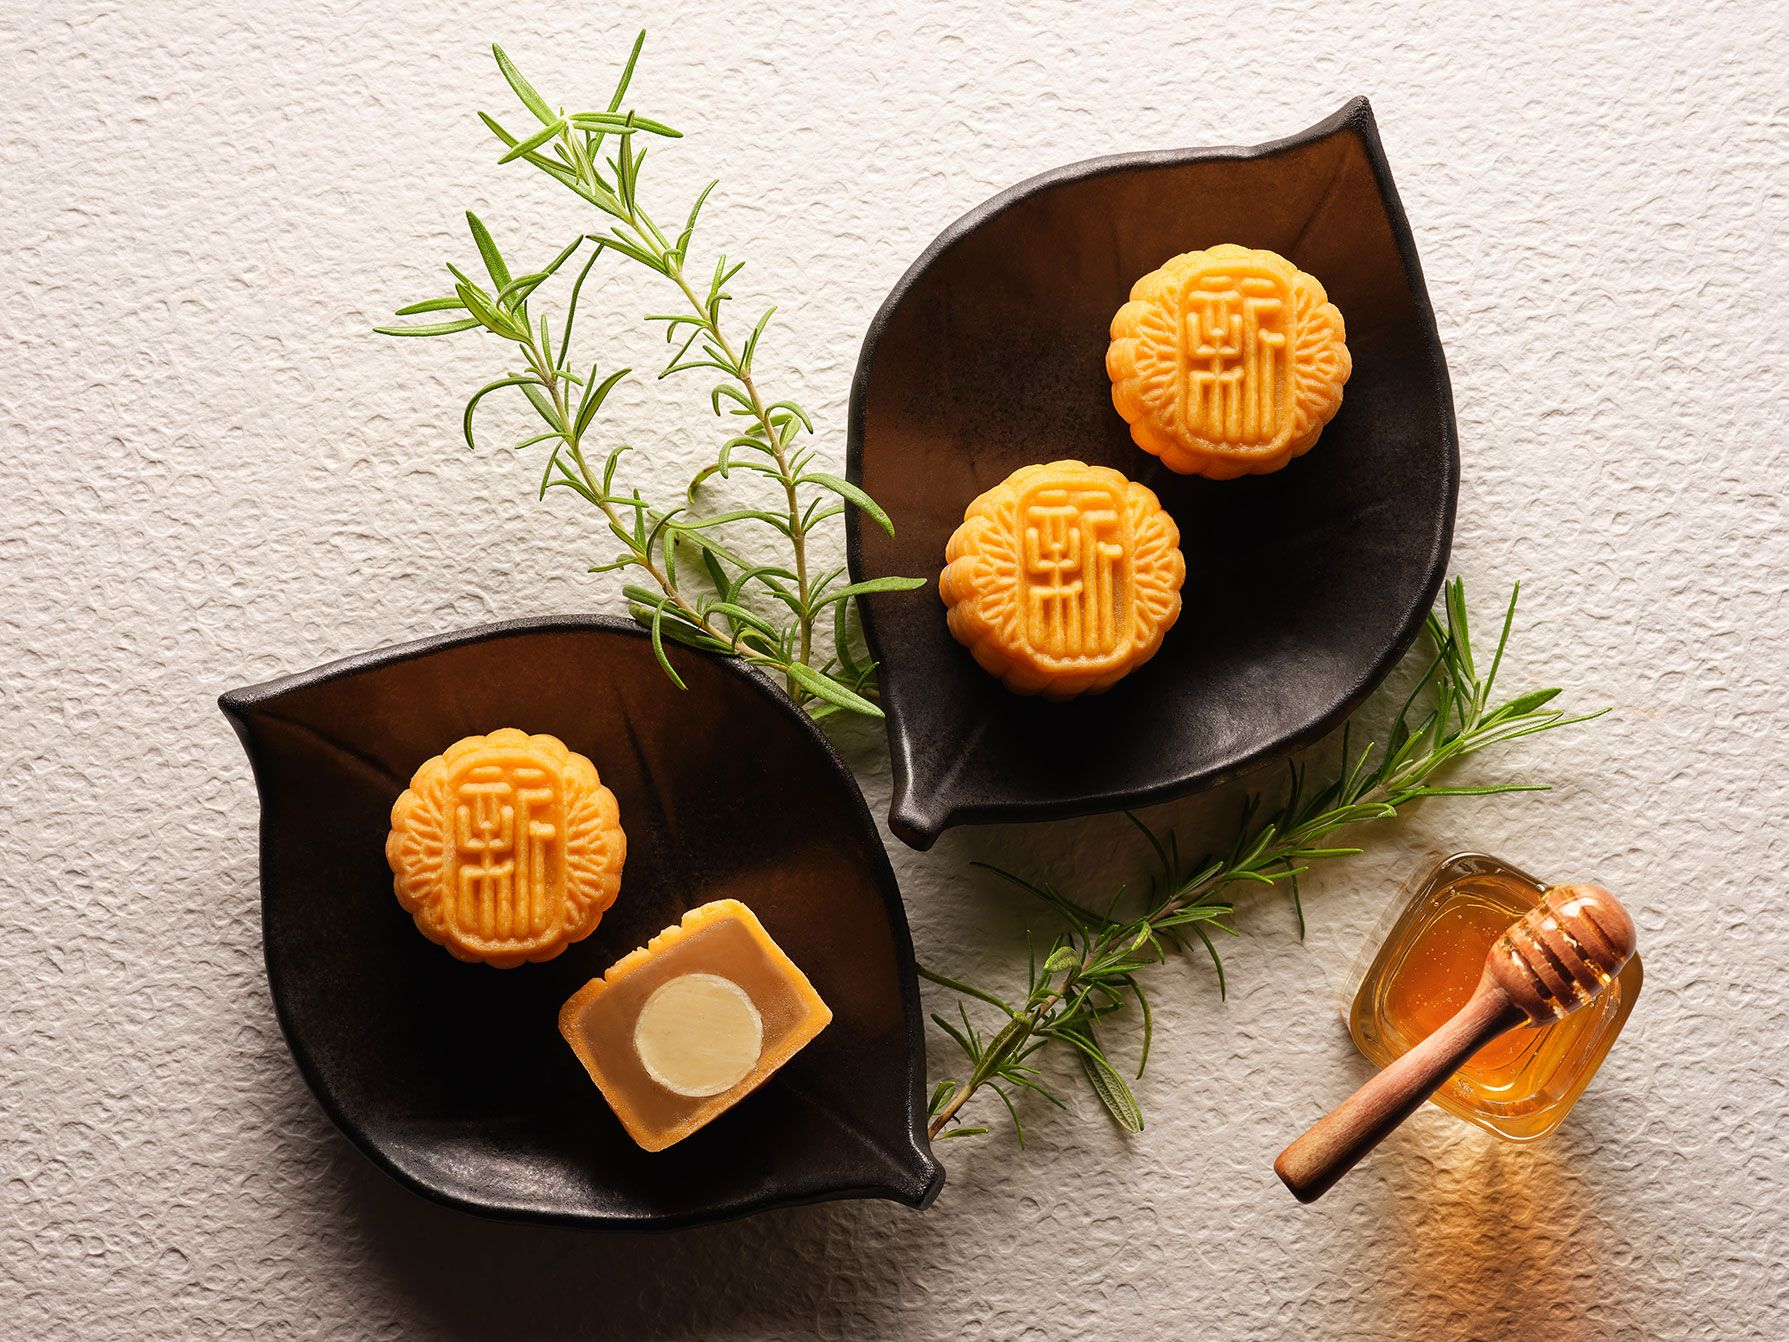 The Best Mooncakes For Mid-Autumn Festival 2019